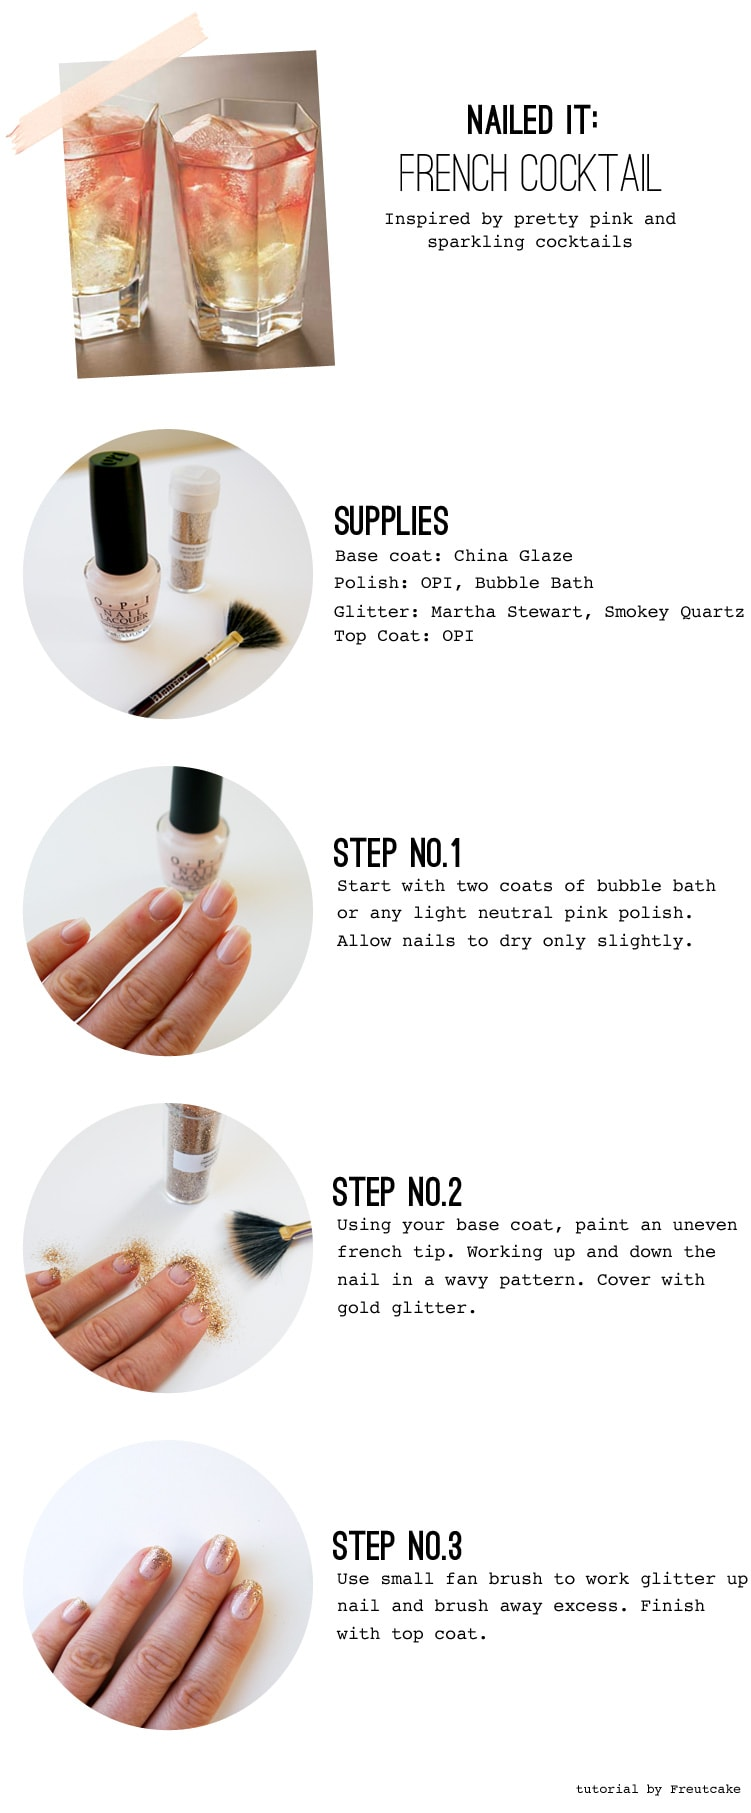 french-cocktail-inspired-nail-tutorial